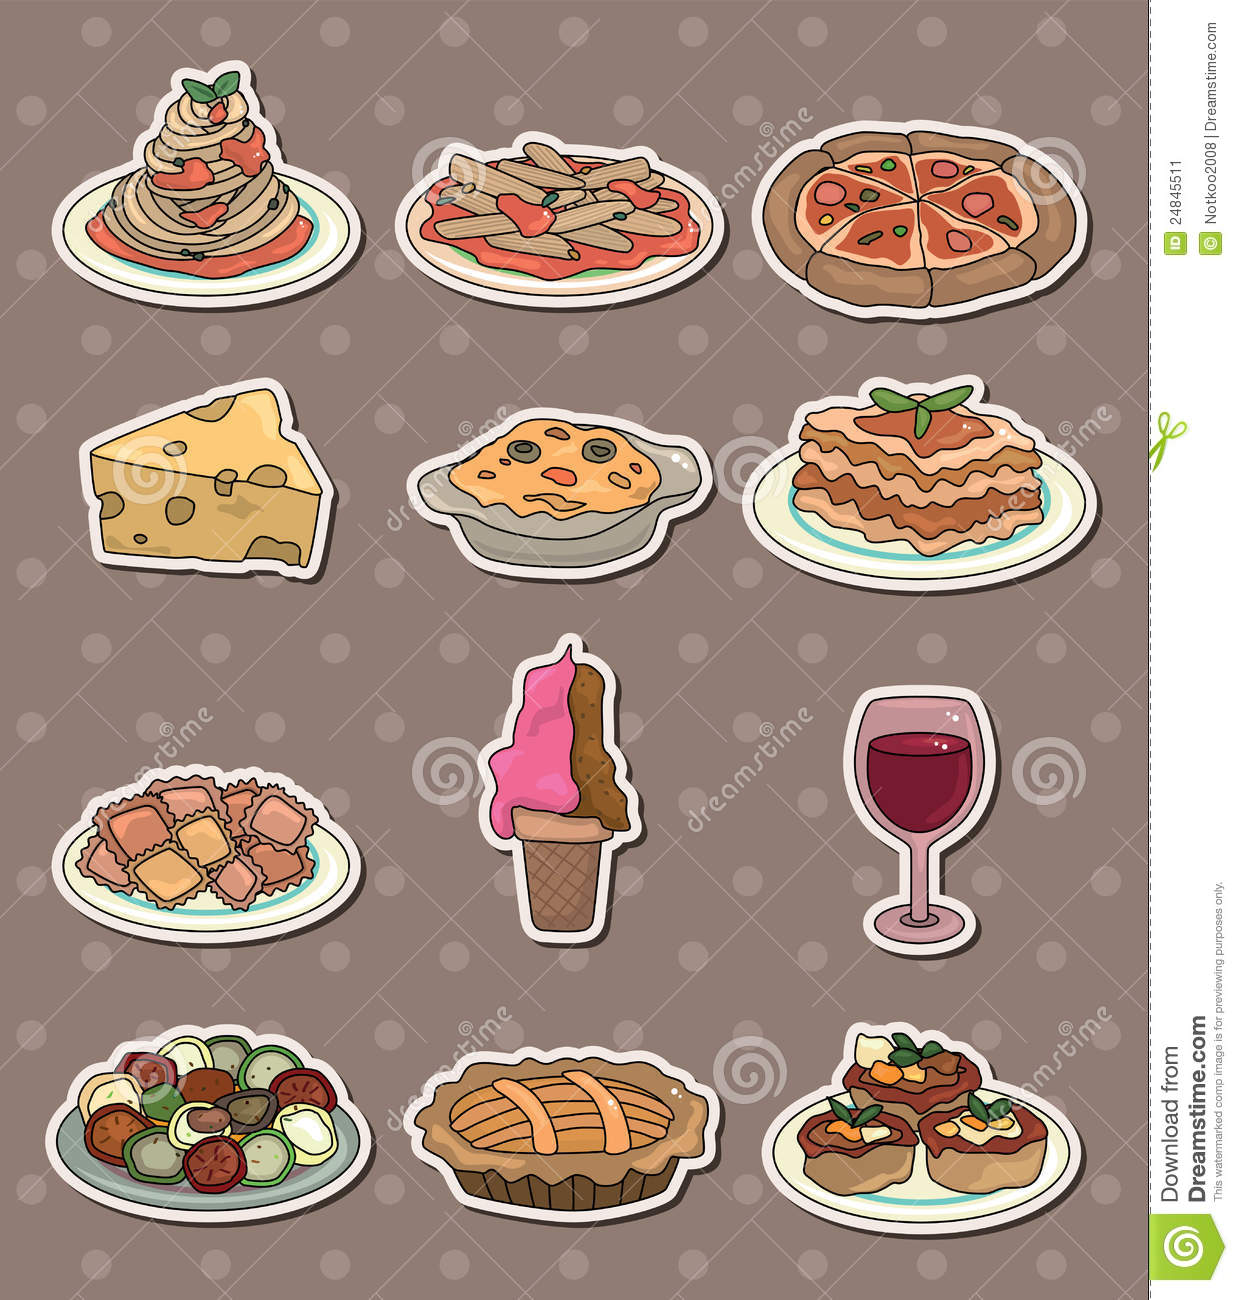 italy food stickers stock image image 24845511. Black Bedroom Furniture Sets. Home Design Ideas